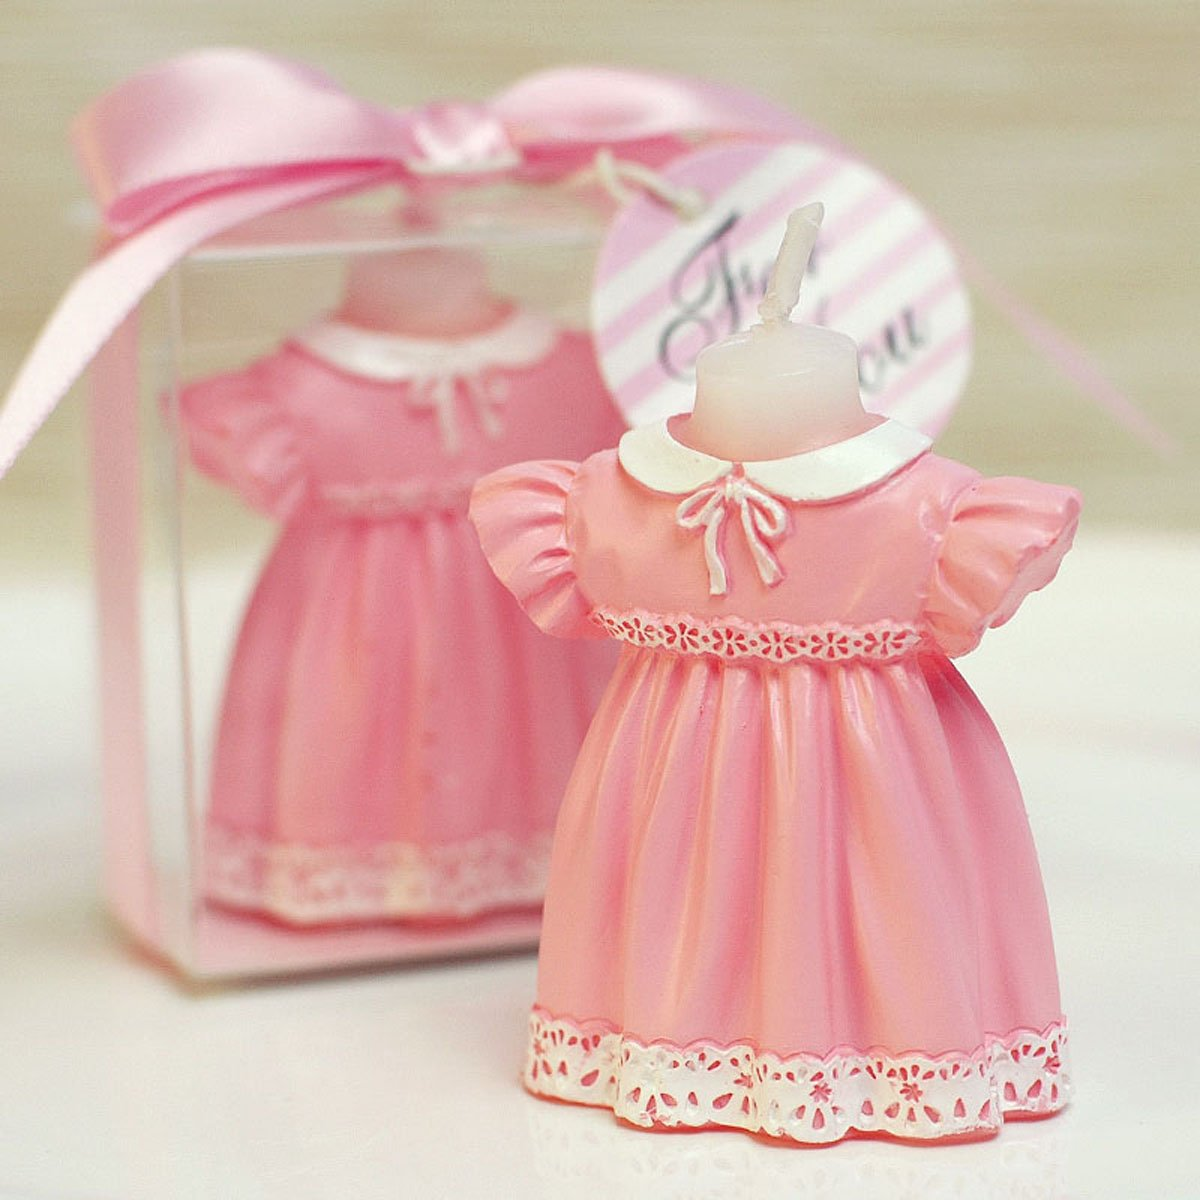 Cartoon Romantic Childhood Clothes Charming Gifts Party Candles Smokeless Candles Birthday Candles for Baby Shower and Wedding Favor Keepsake Favor (5, Girl clothes)